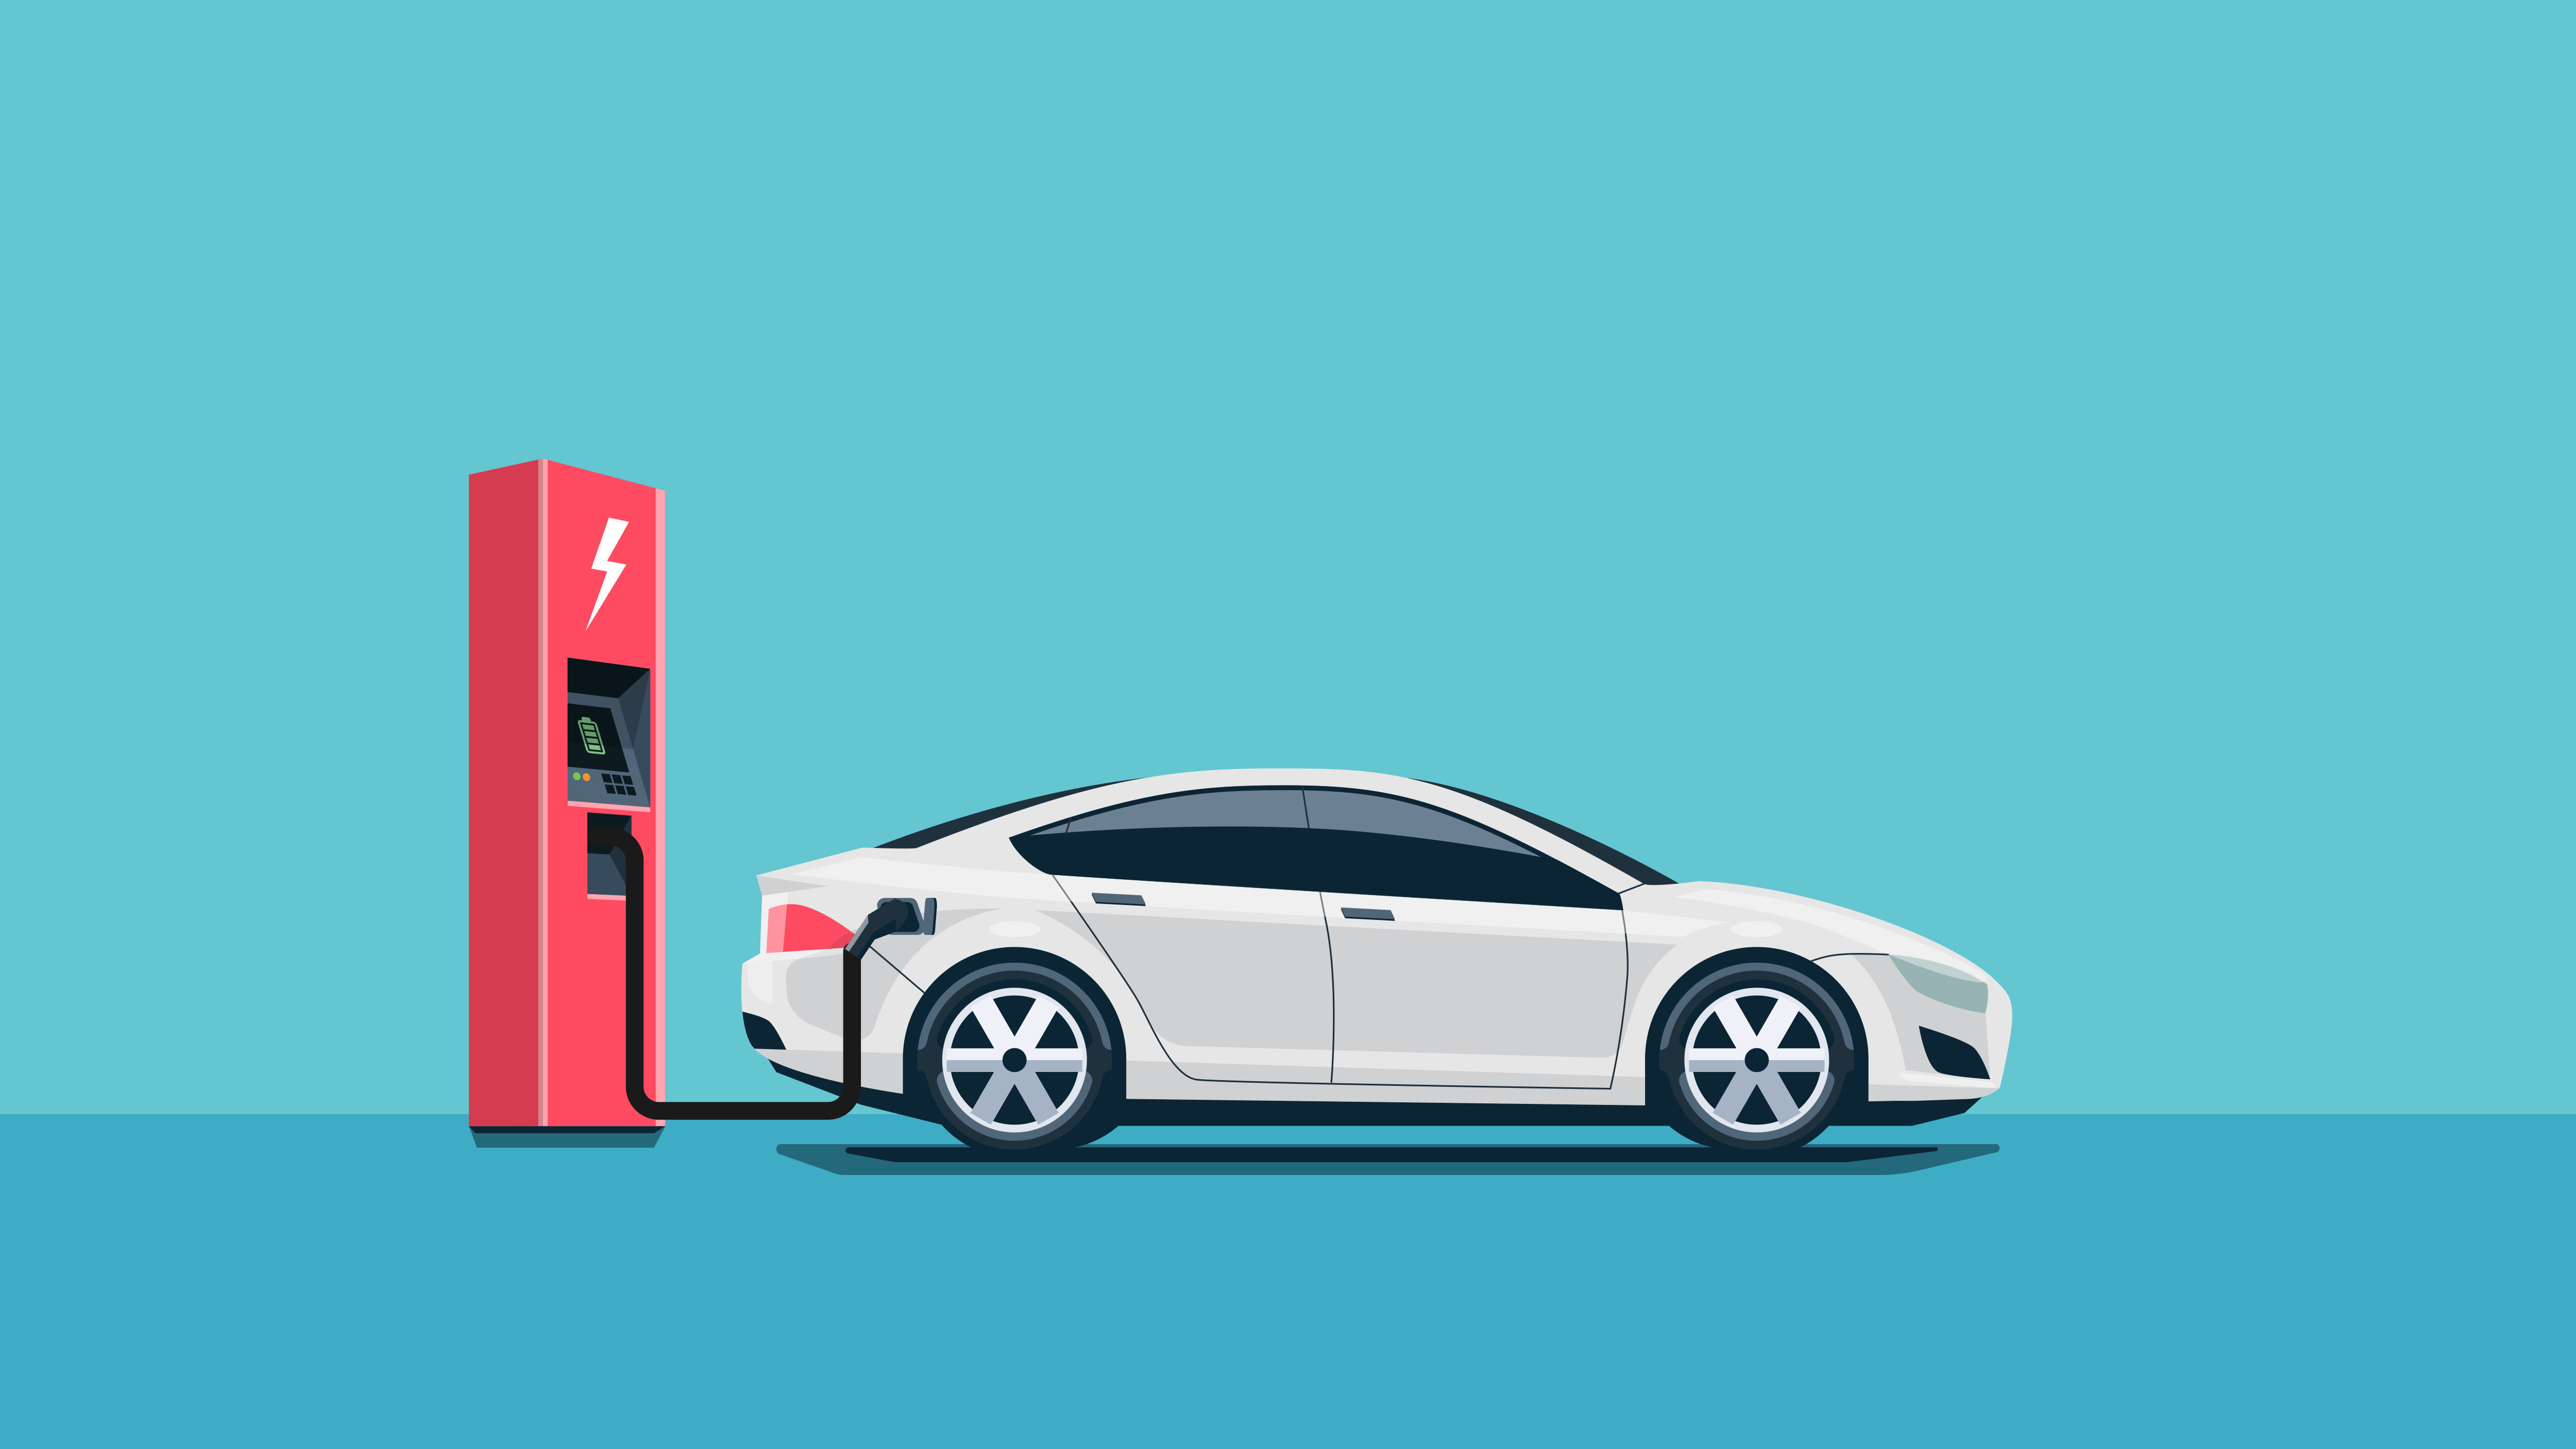 Electric Vehicle Industry in India